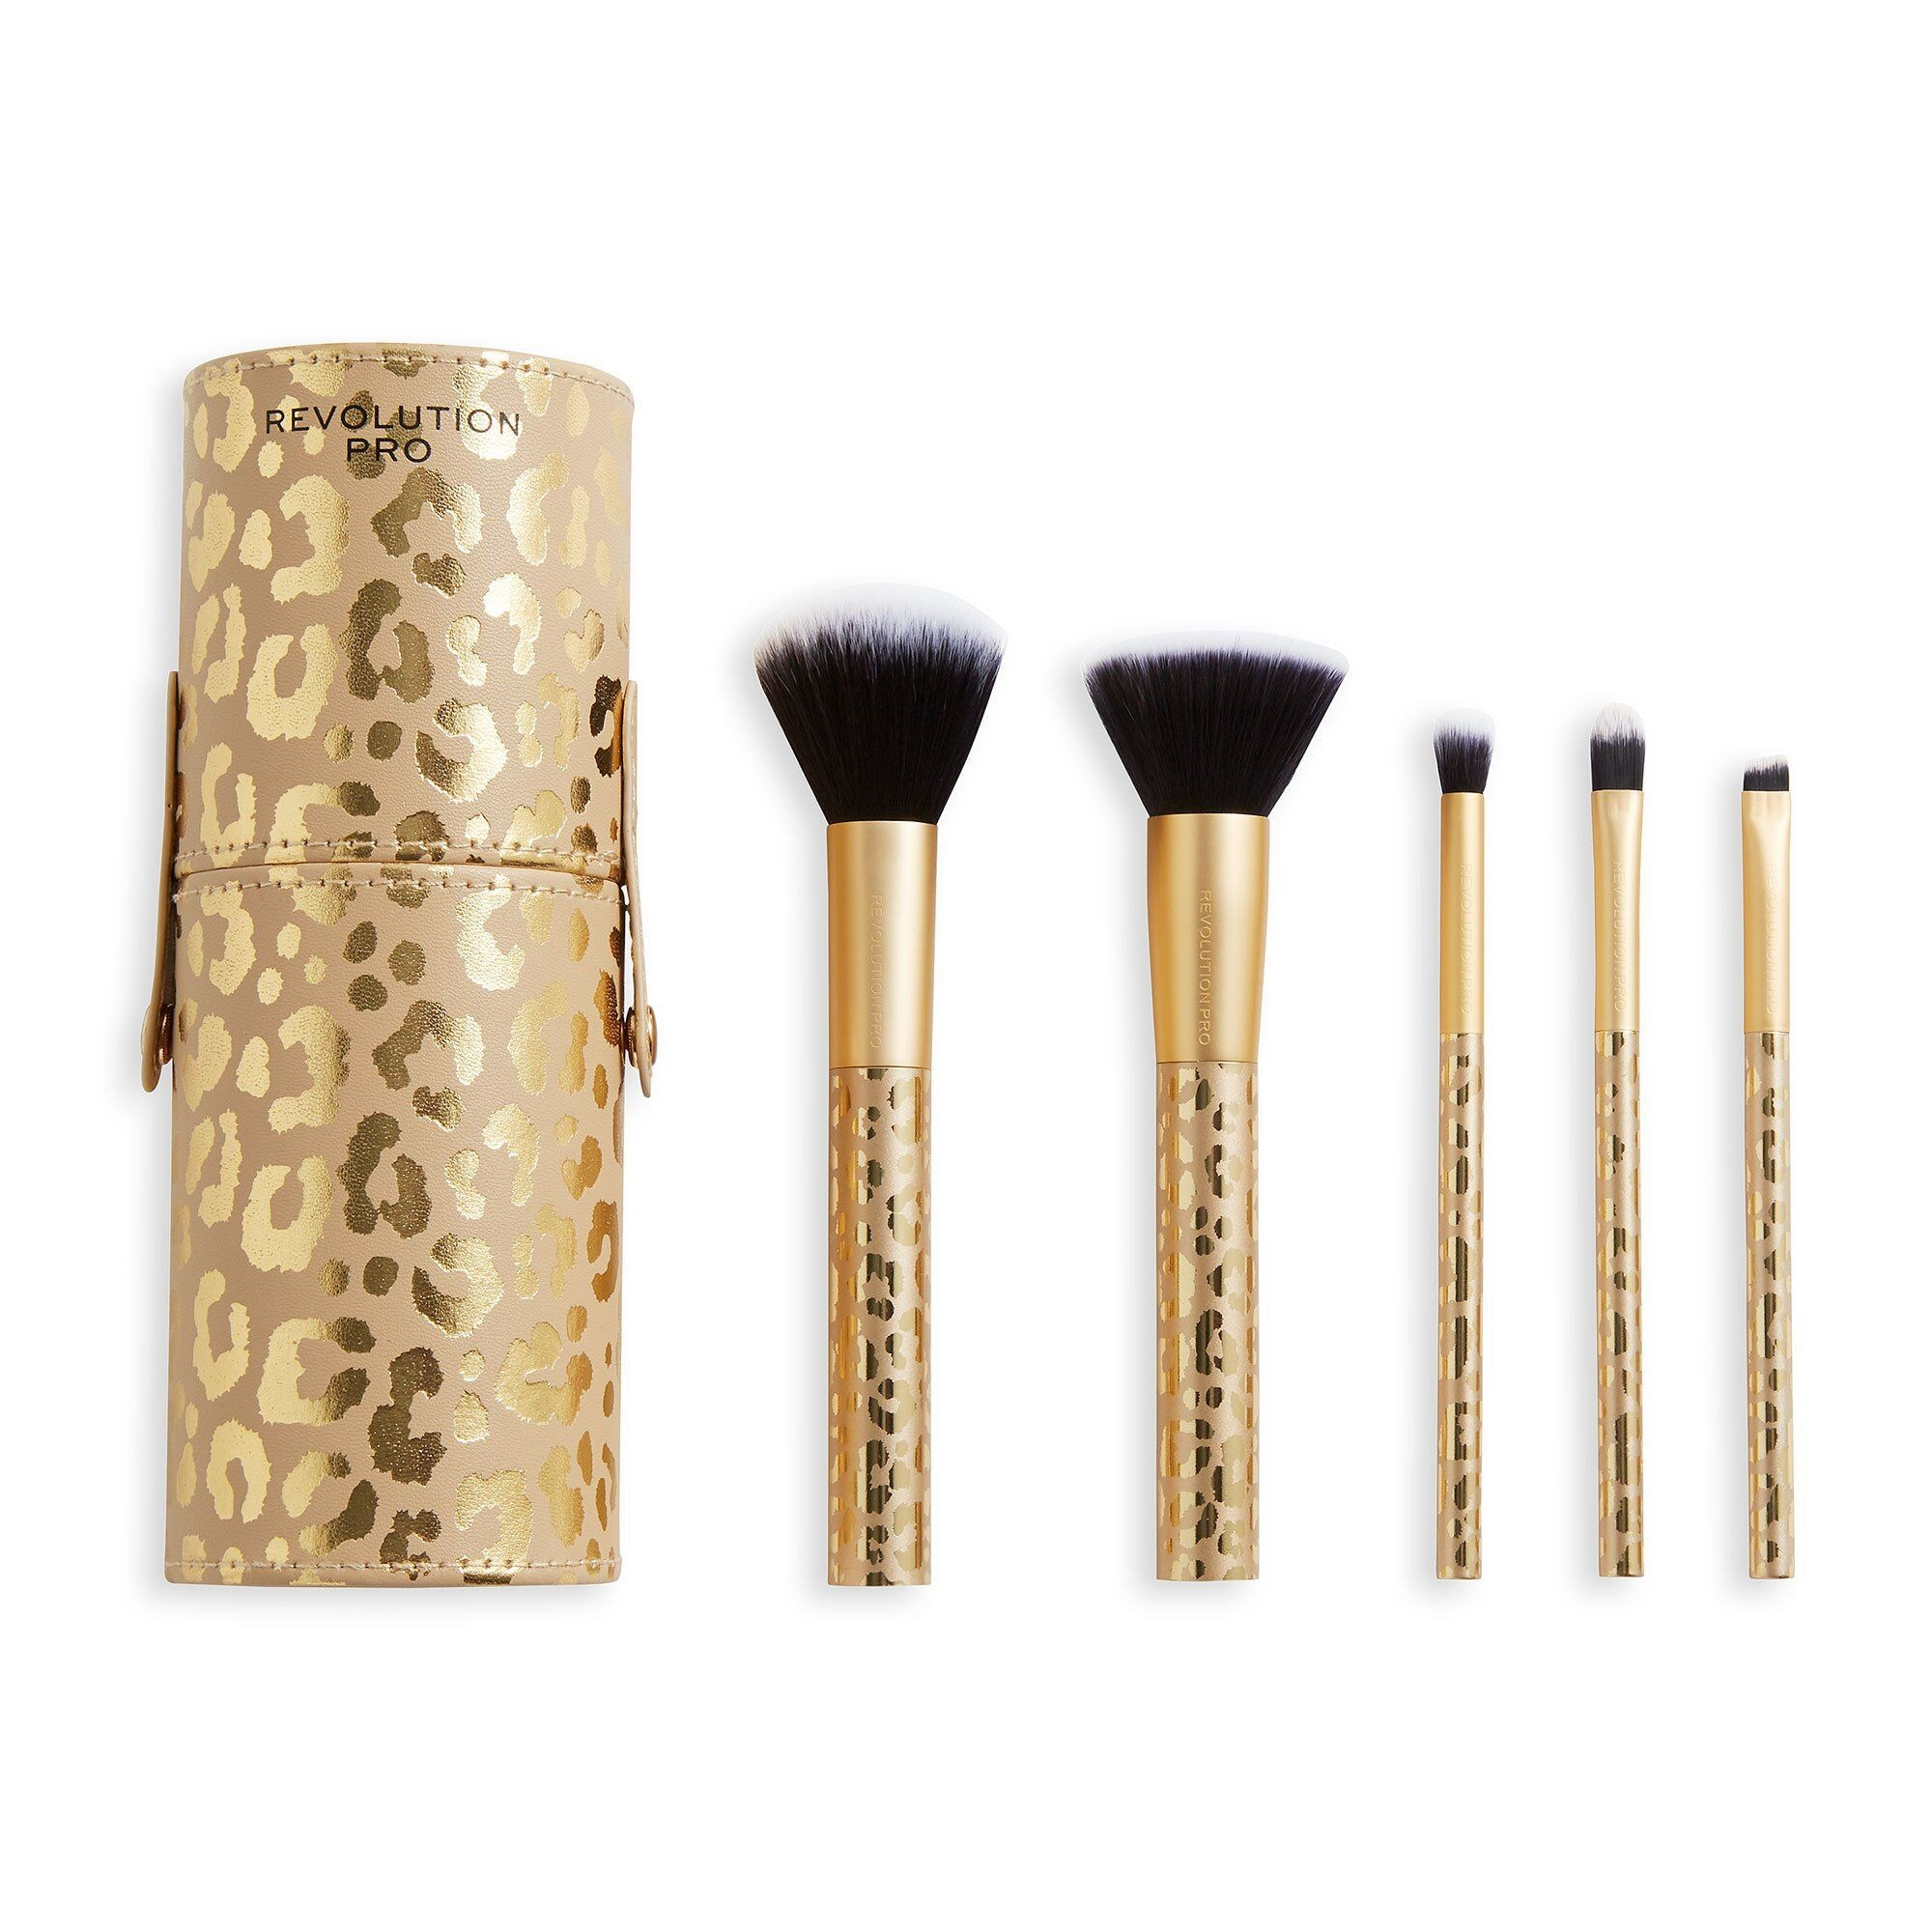 5-Teiliges Pinsel-Set - New Neutrals Brush Collection